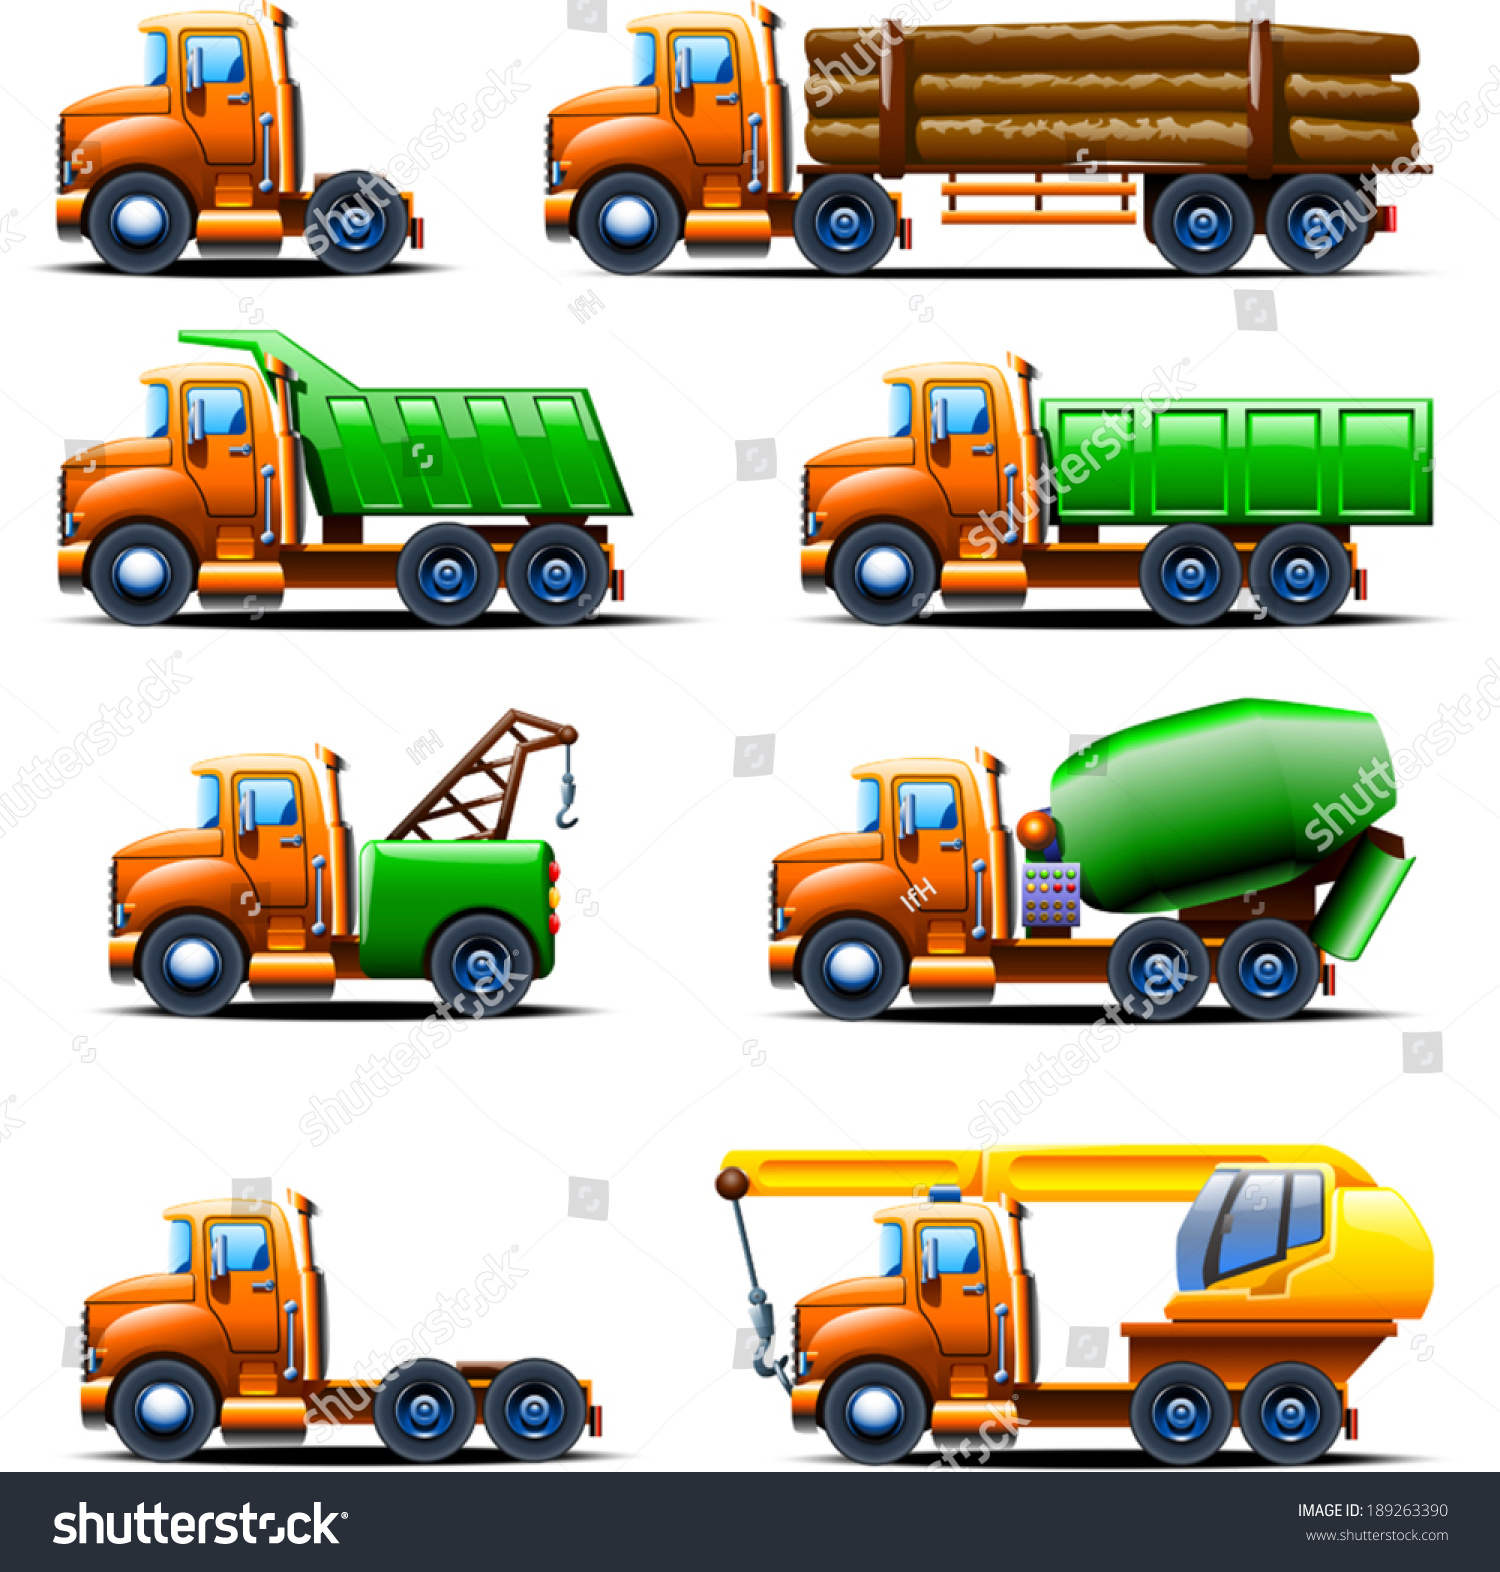 Illustration Different Types Old Fashioned Trucks Stock Vector (2018 ...